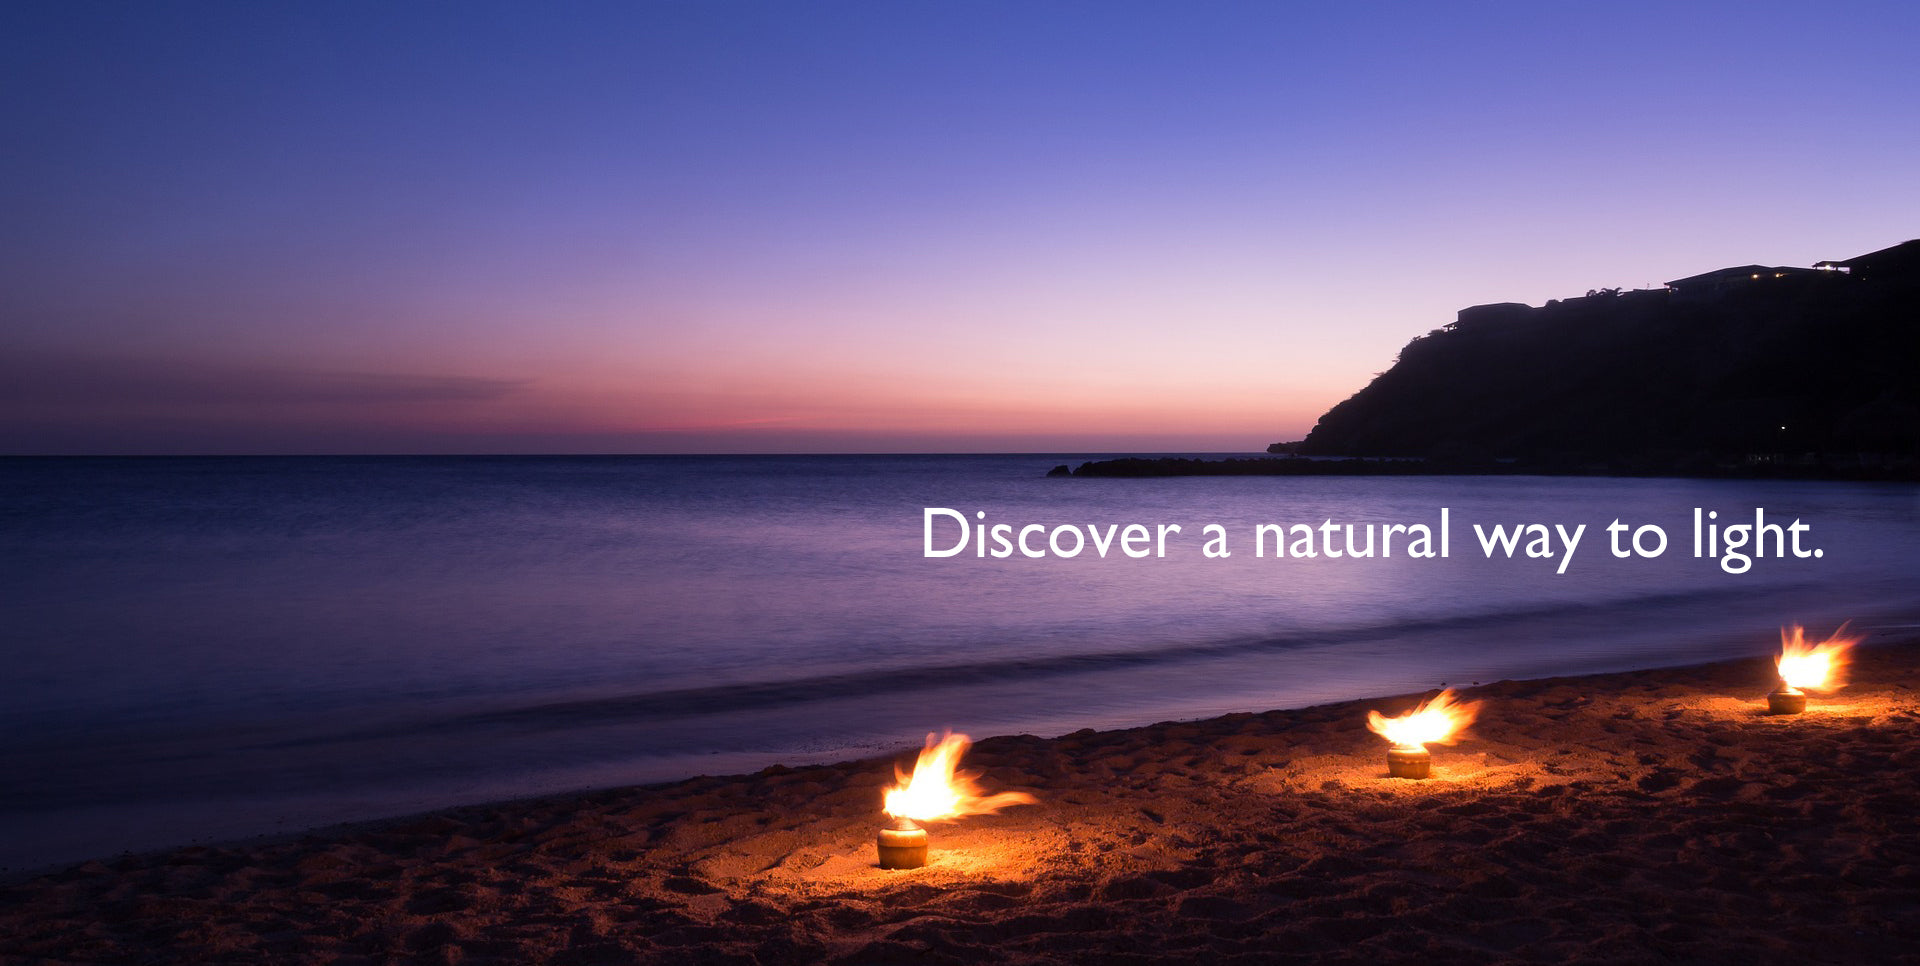 Discover a Natural Way to Light.